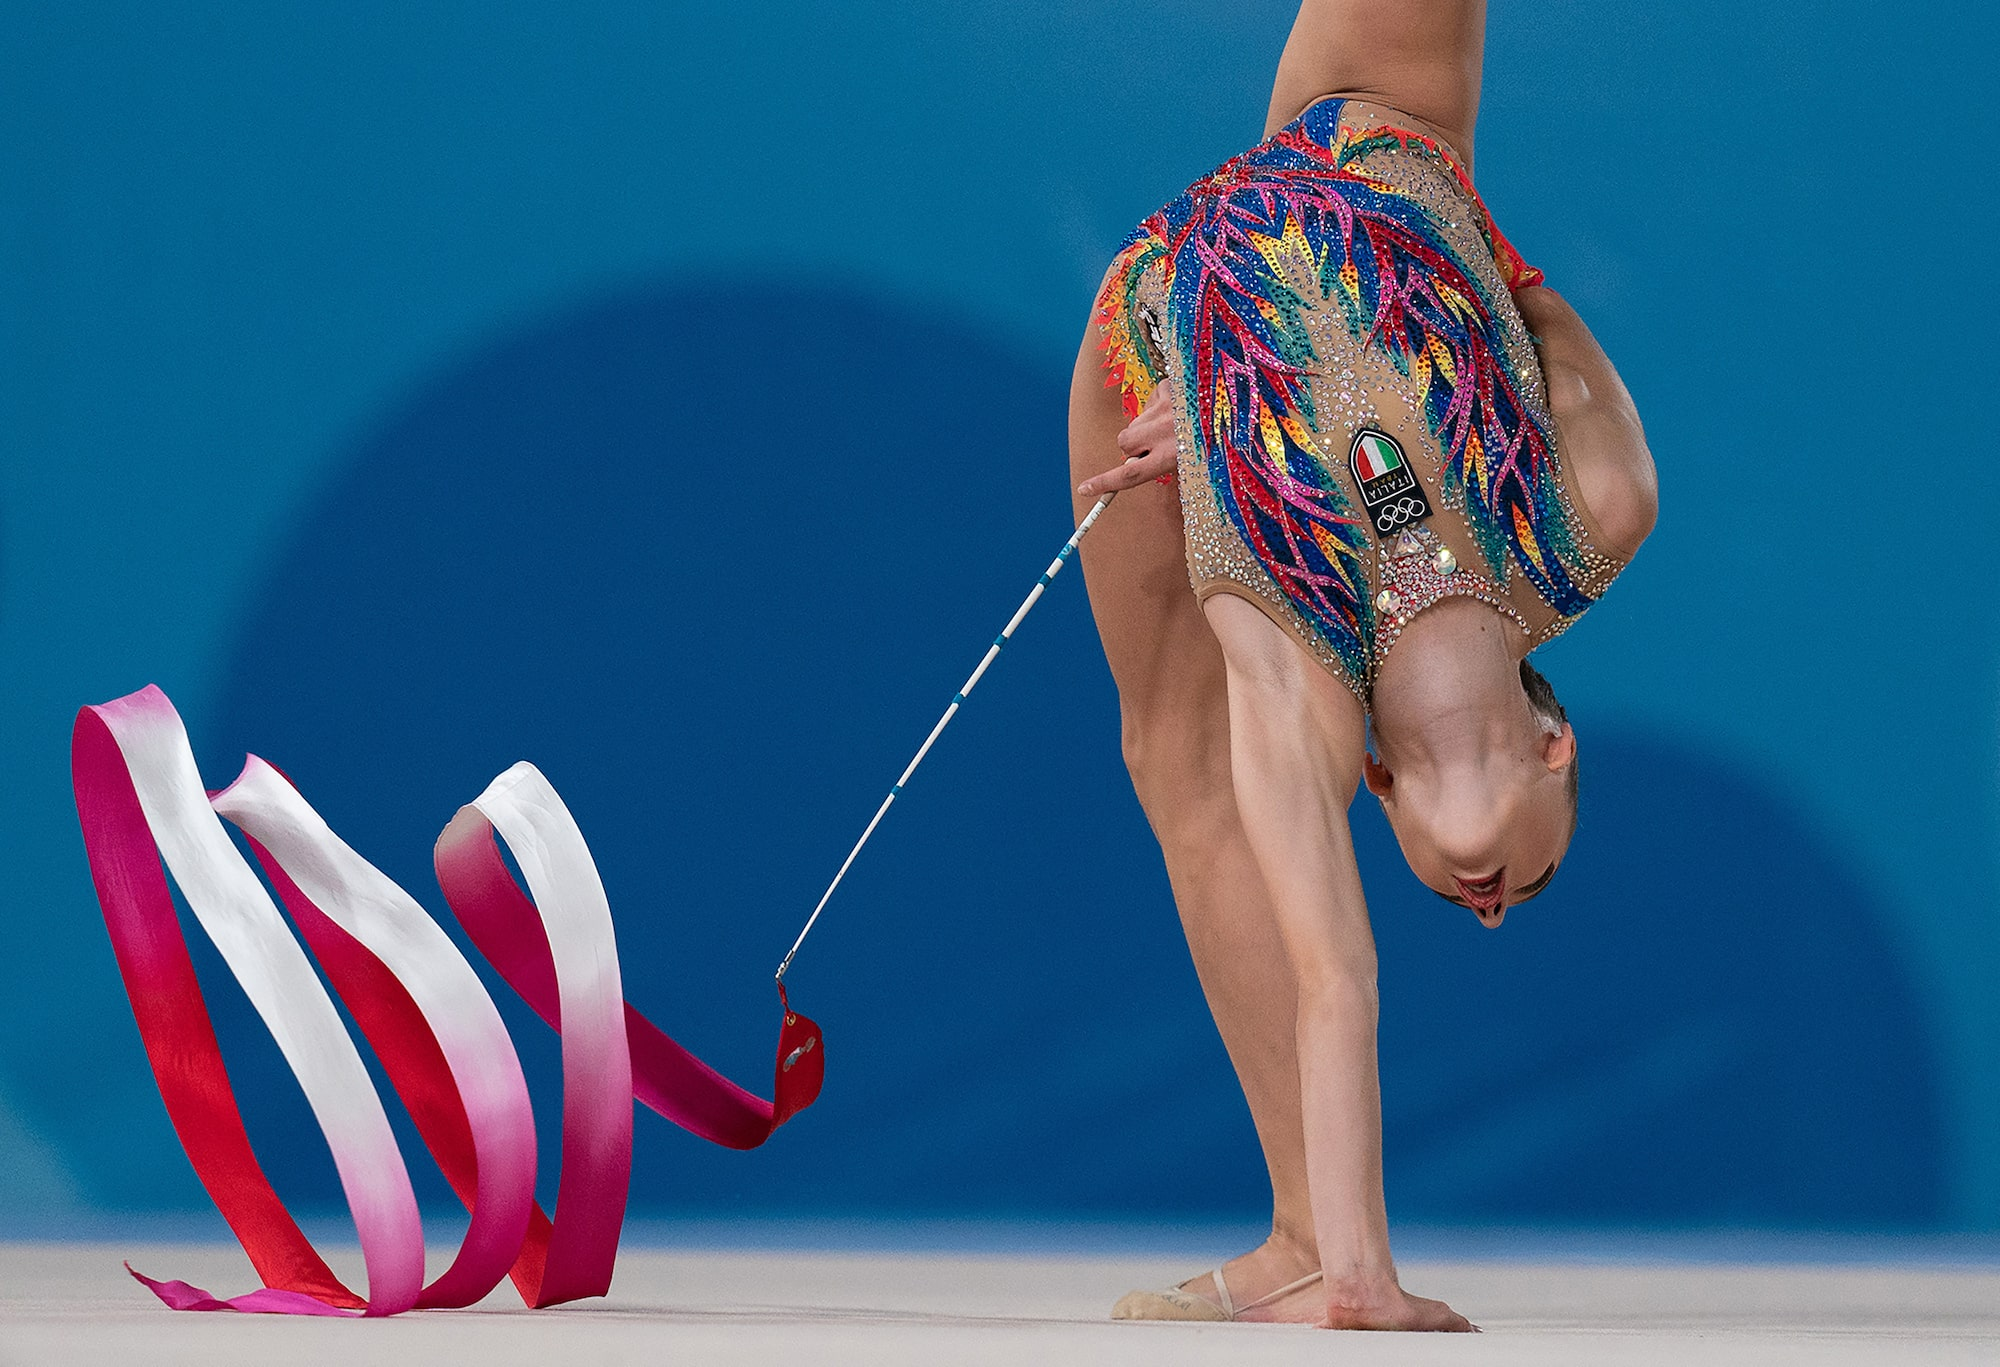 bob martin sony alpha 9 gymnast bends completely over while twirling her ribbon